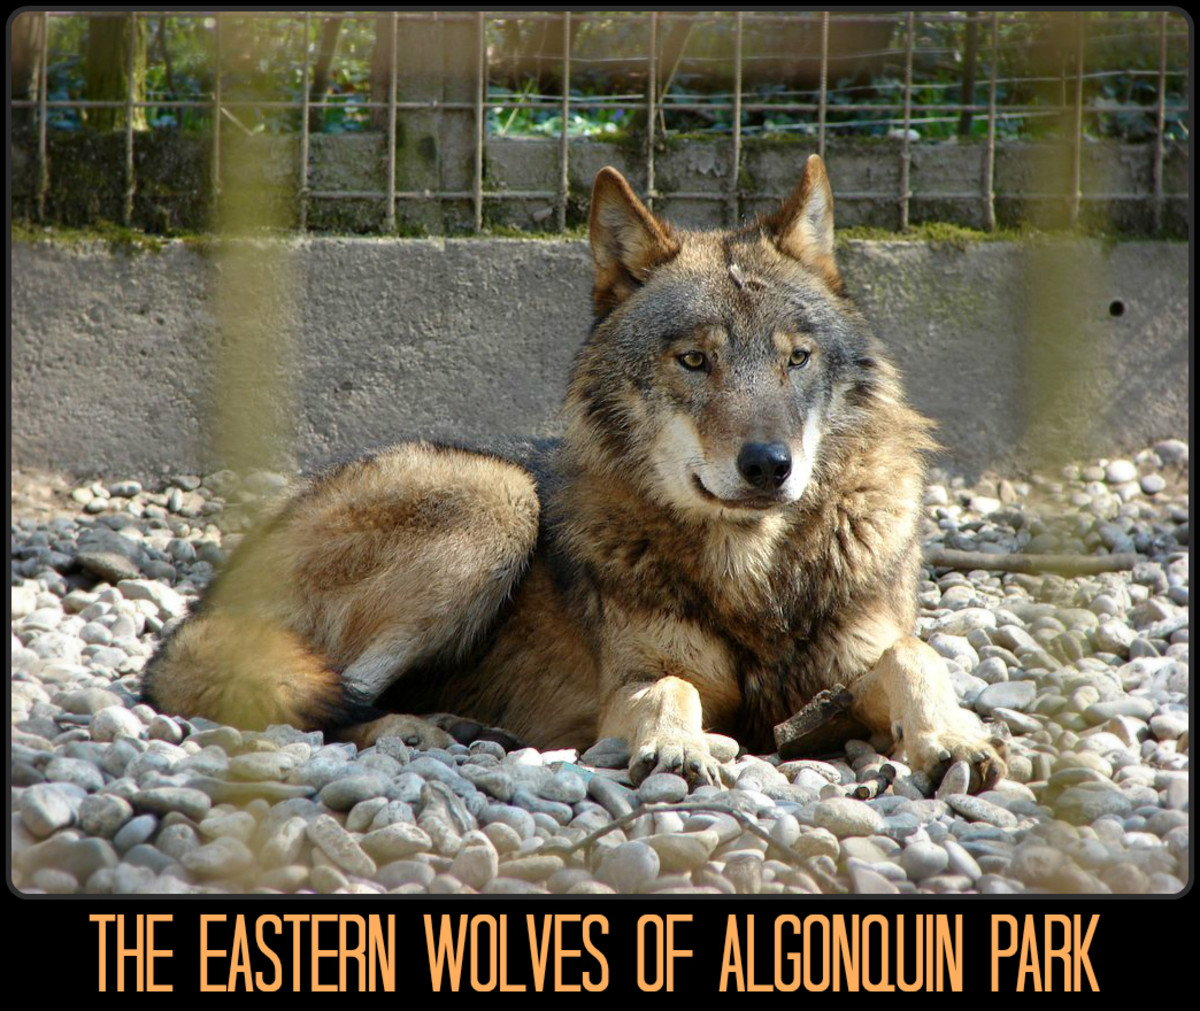 Algonquin Provincial Park is home to 30-35 eastern wolf packs. Sadly, there are less than 500 of these animals left in the wild, with Algonquin Park seeing the largest population.